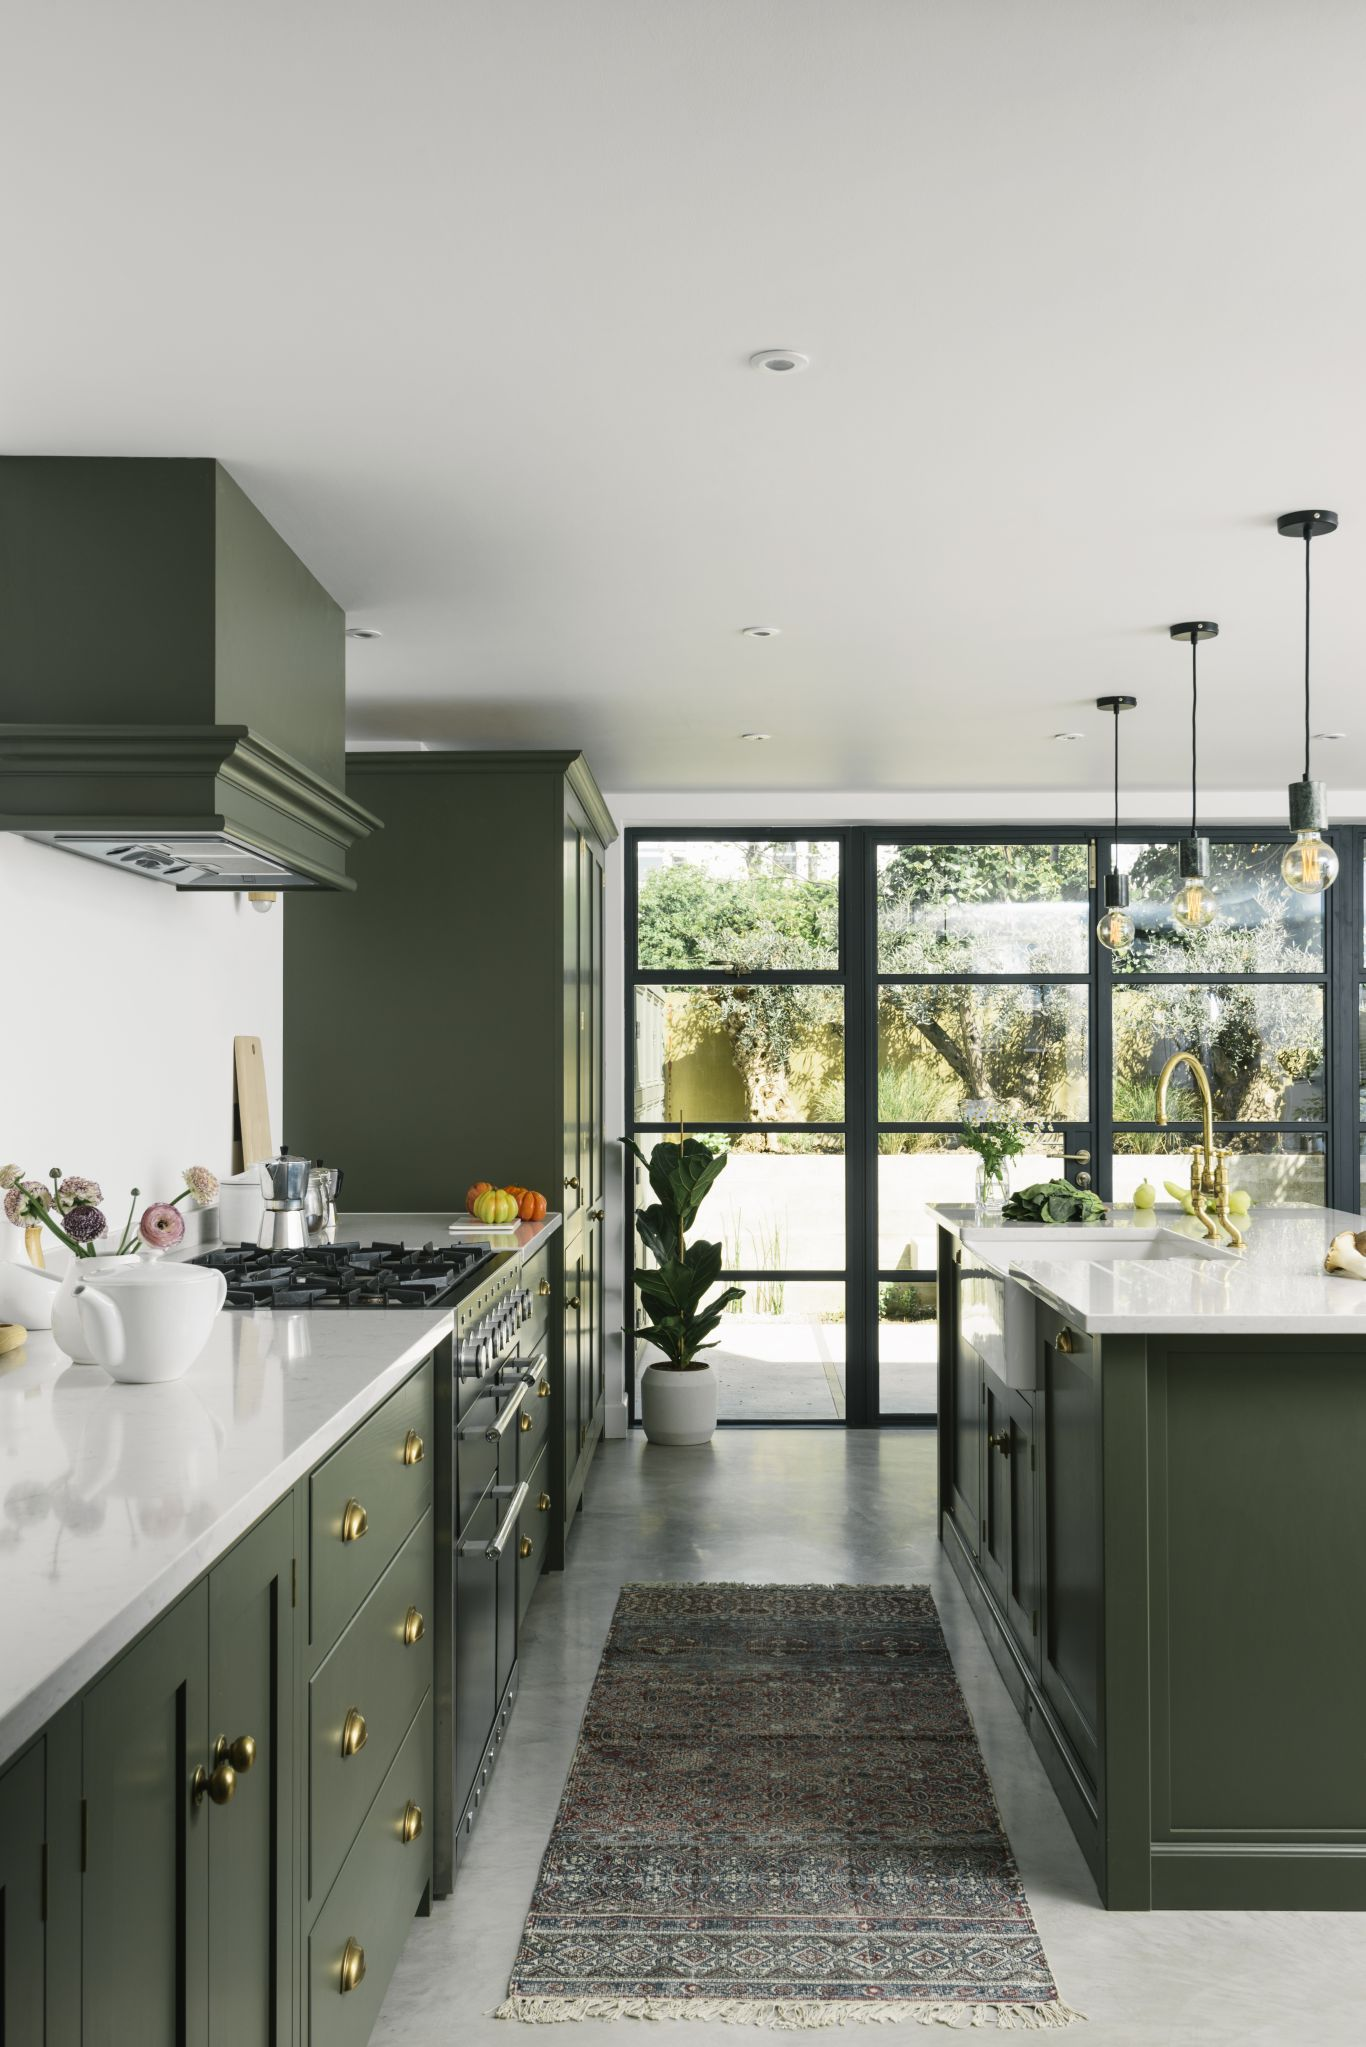 5 Reasons to Invest in a Shaker Style Cabinet for your Kitchen